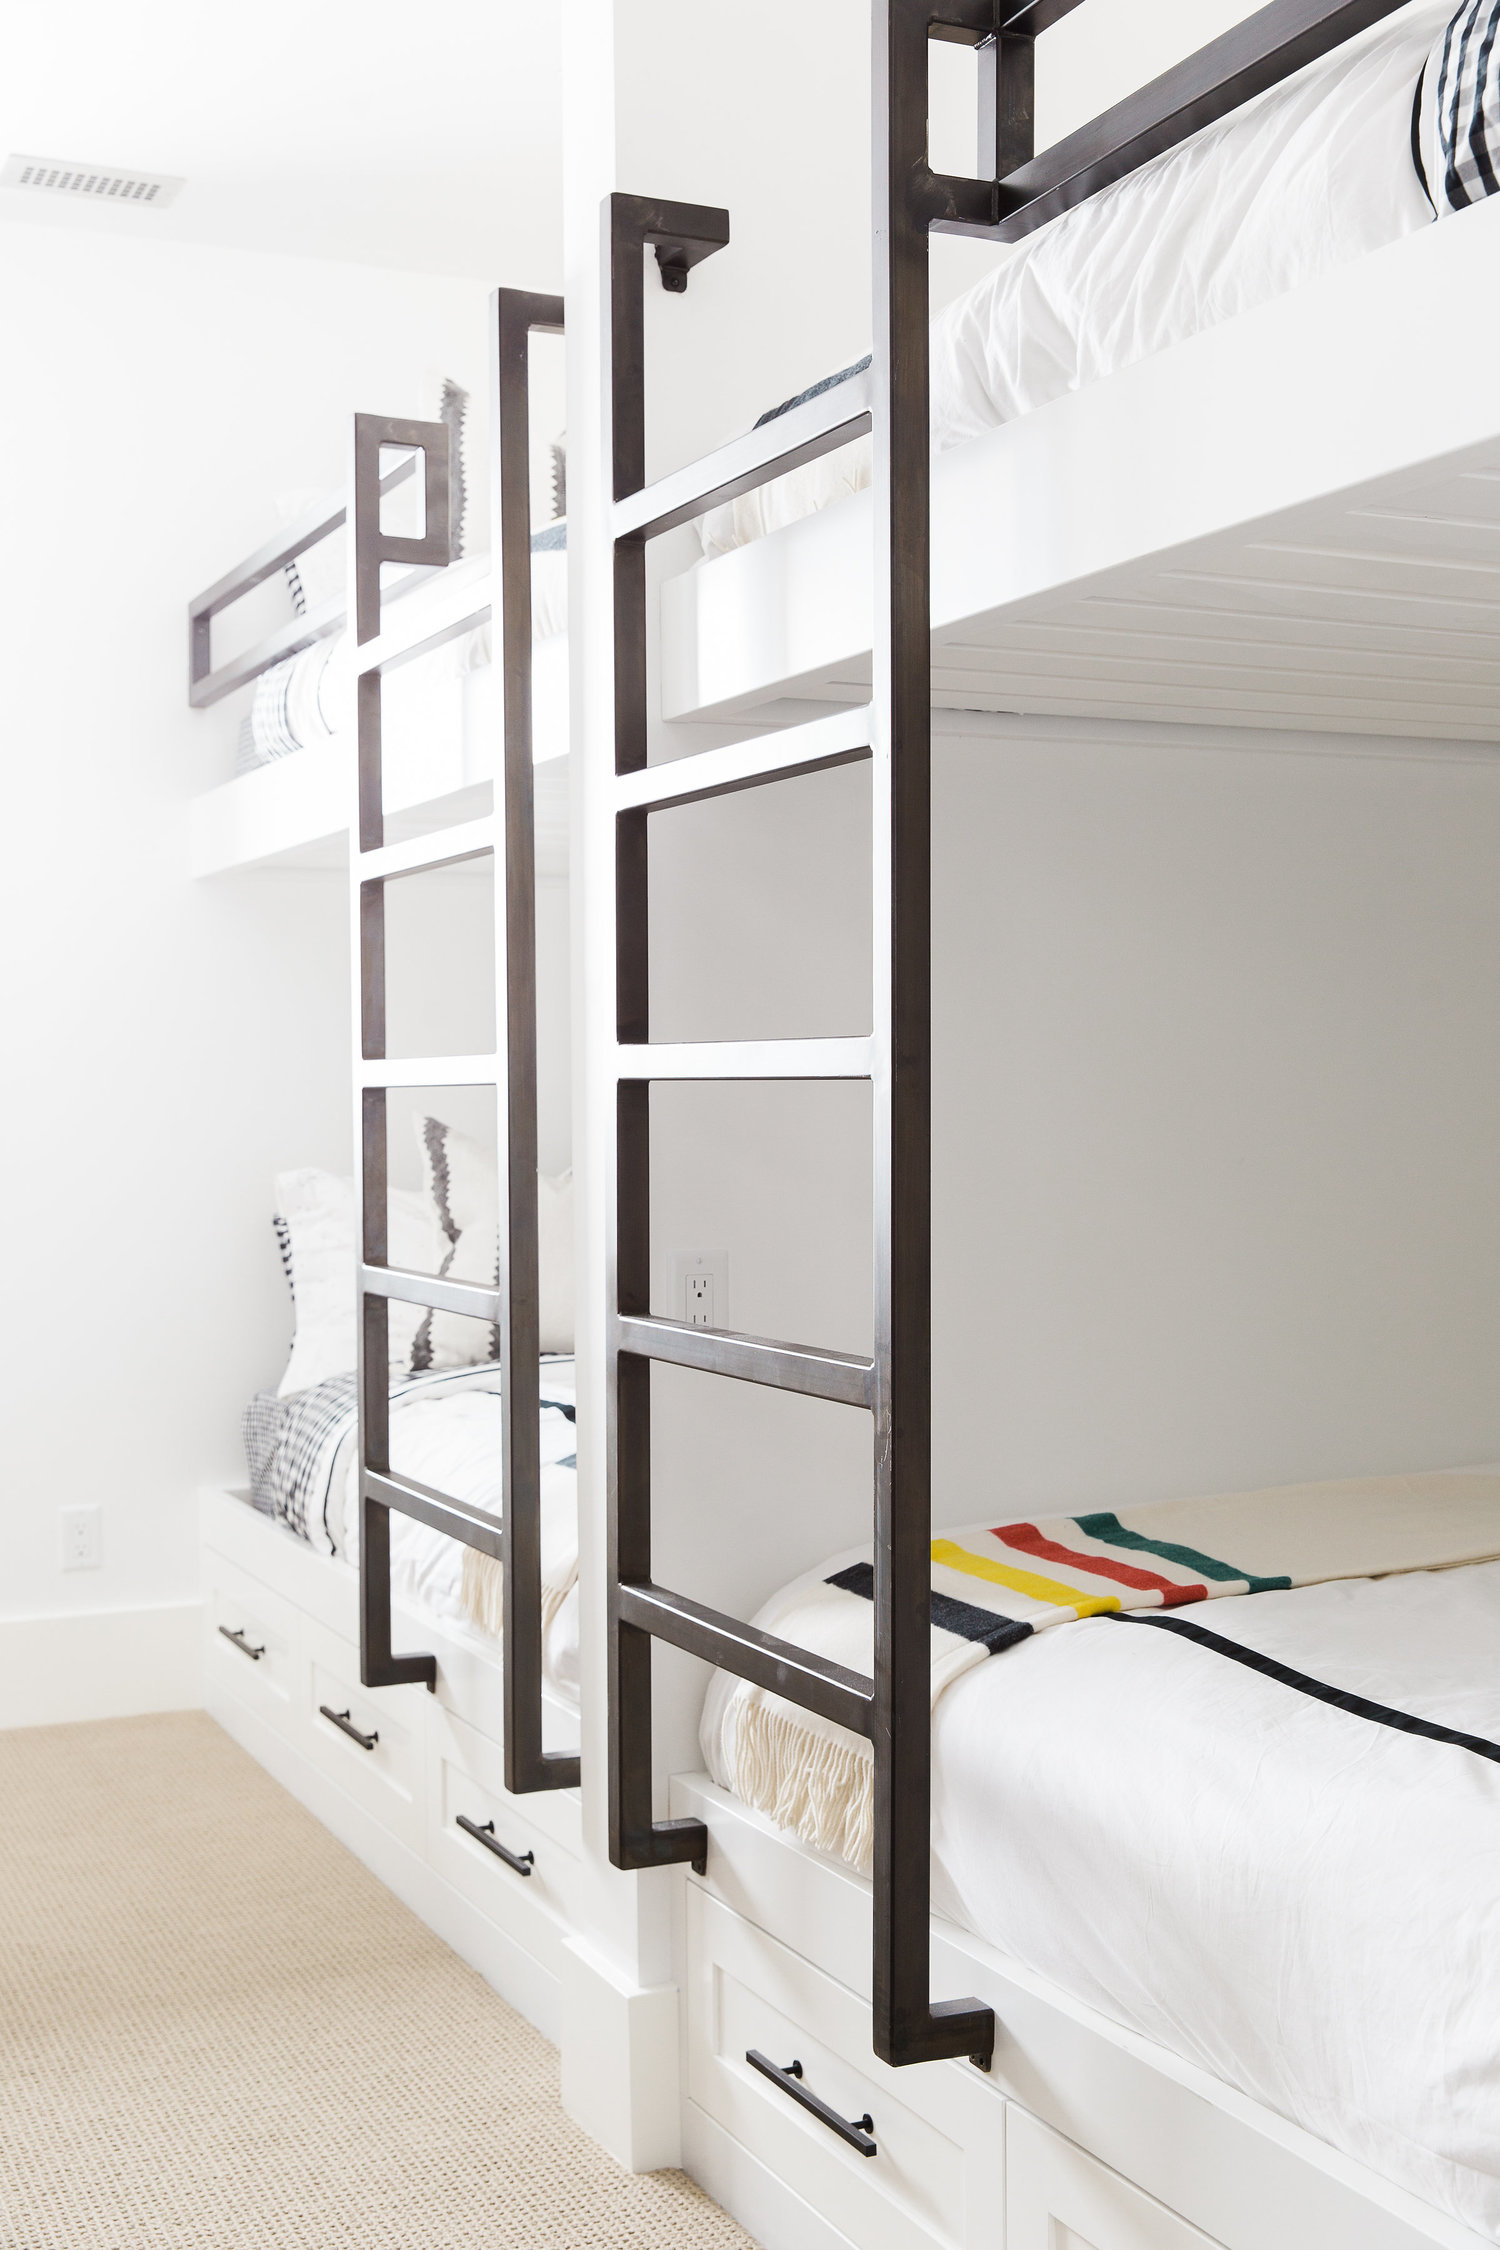 Metal ladders mounted on bunk beds